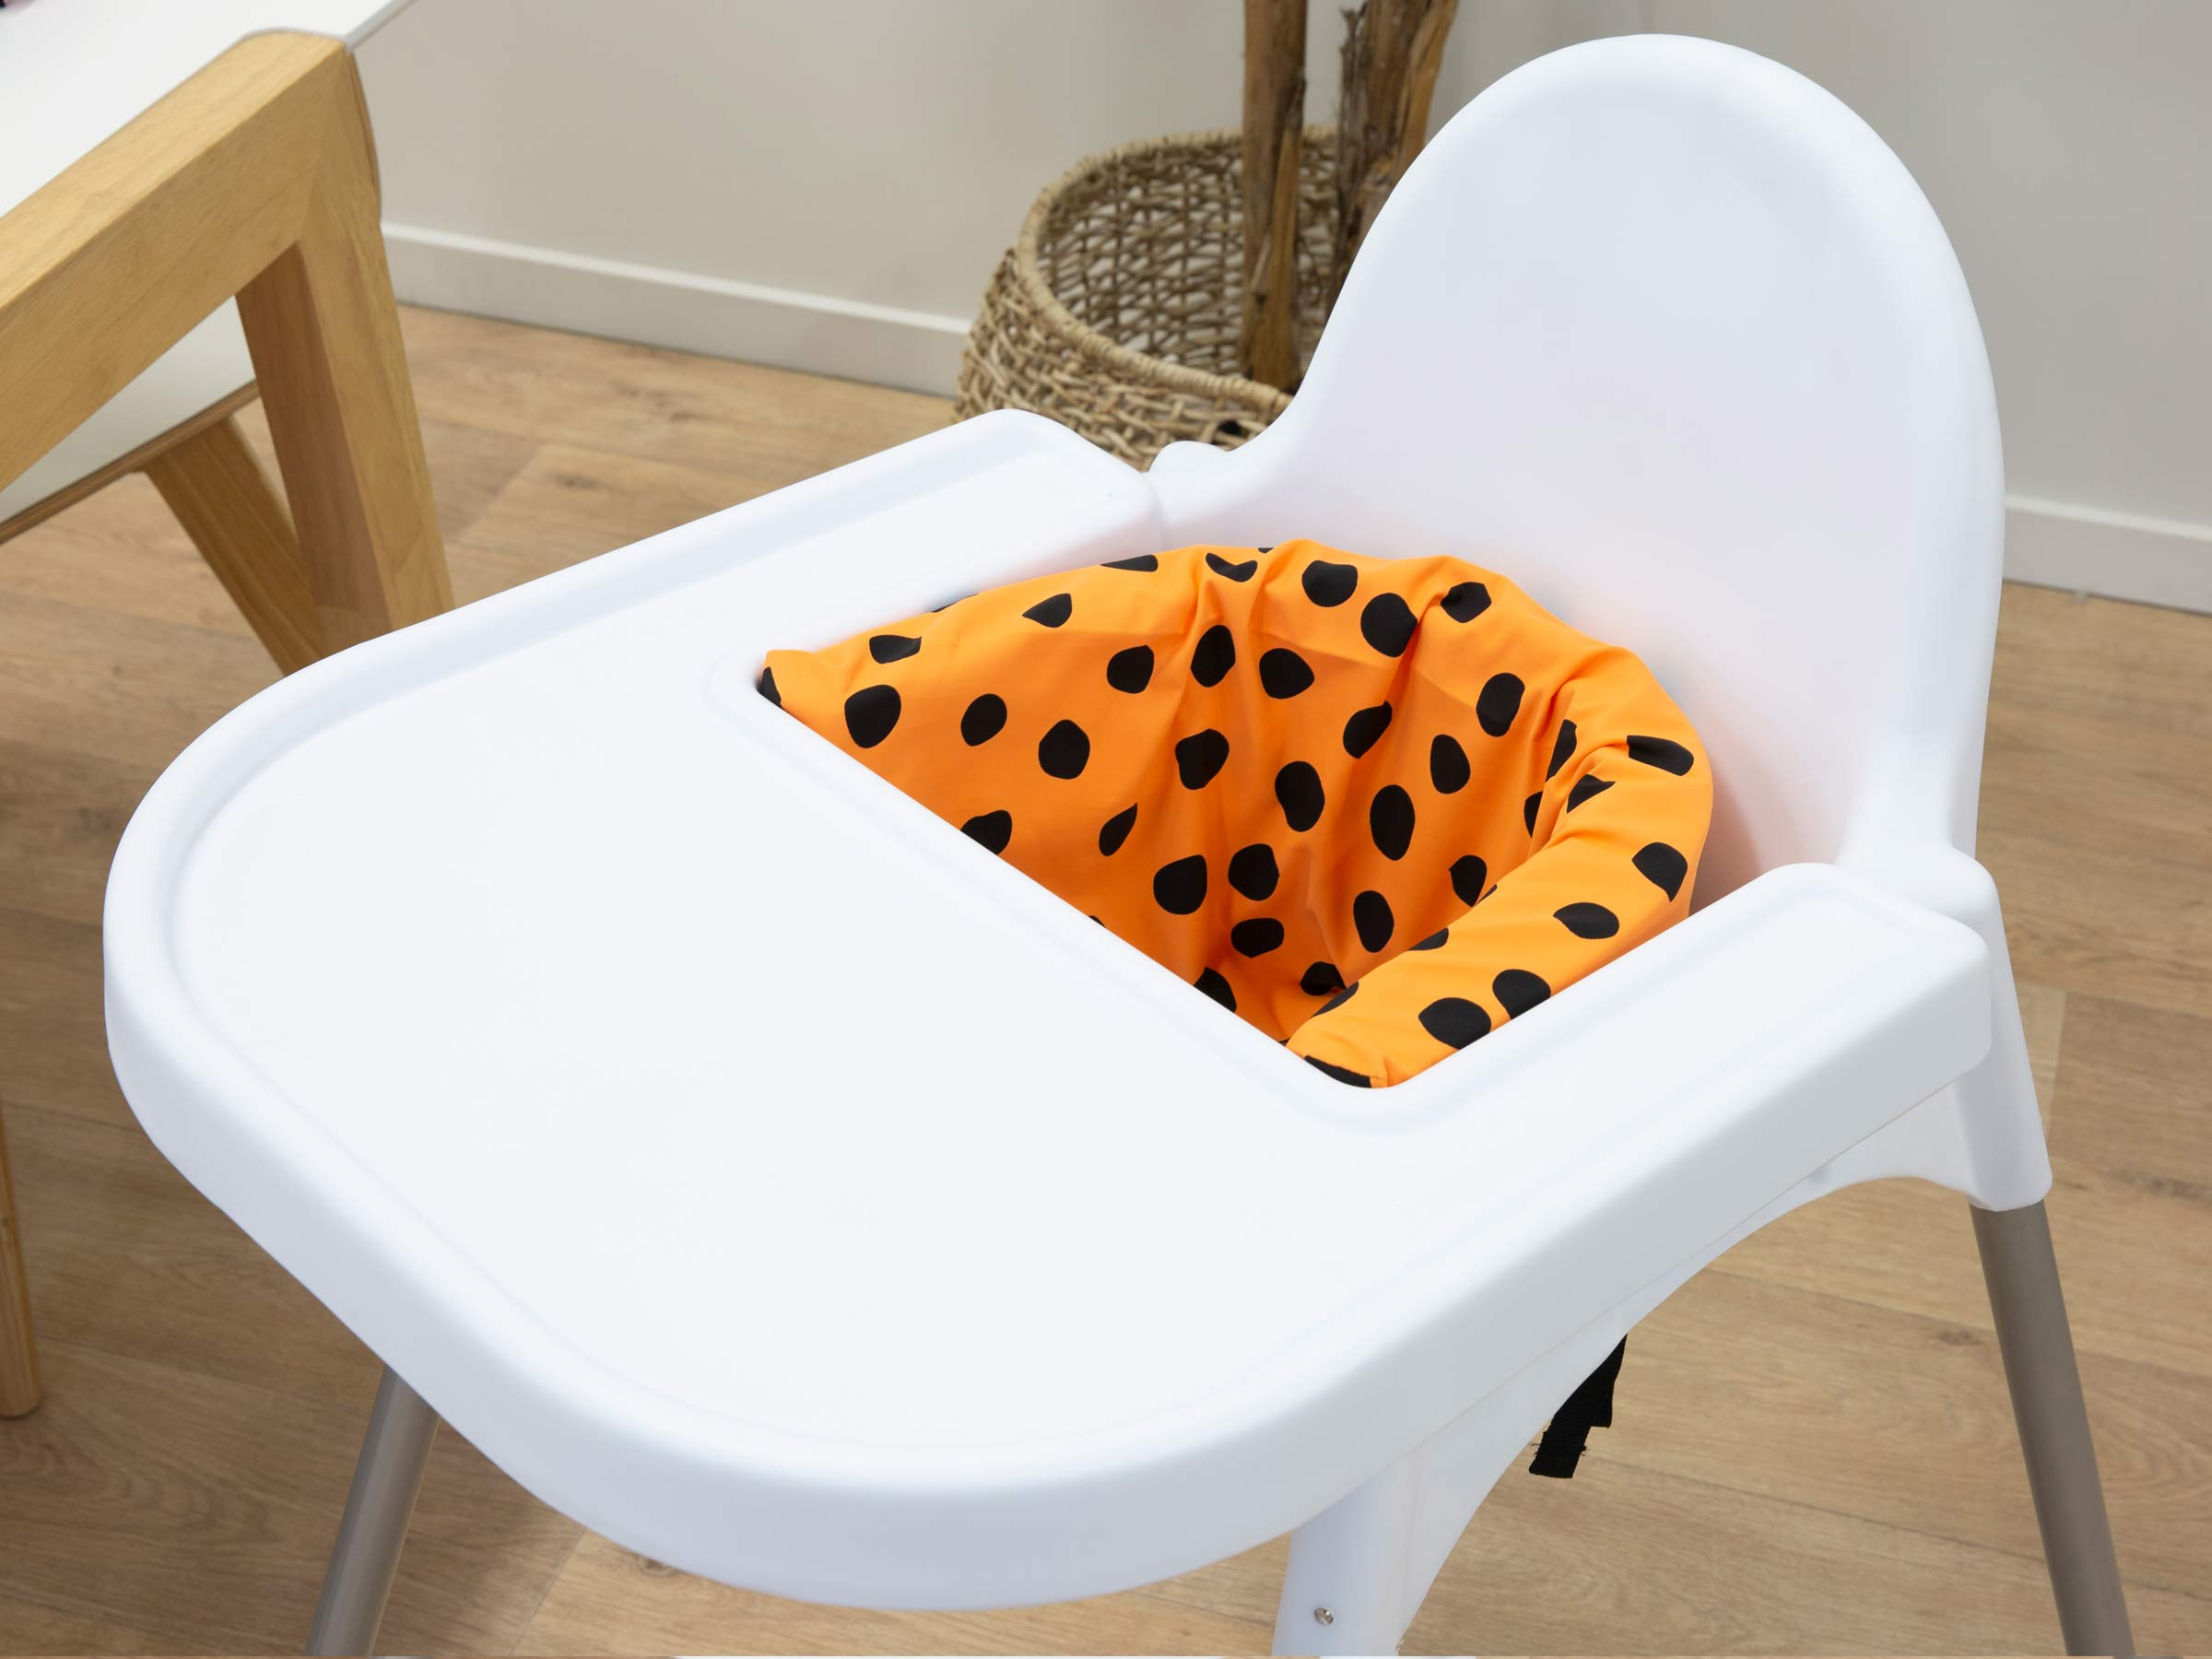 Designer Highchair Insert Cover - Orange Spots